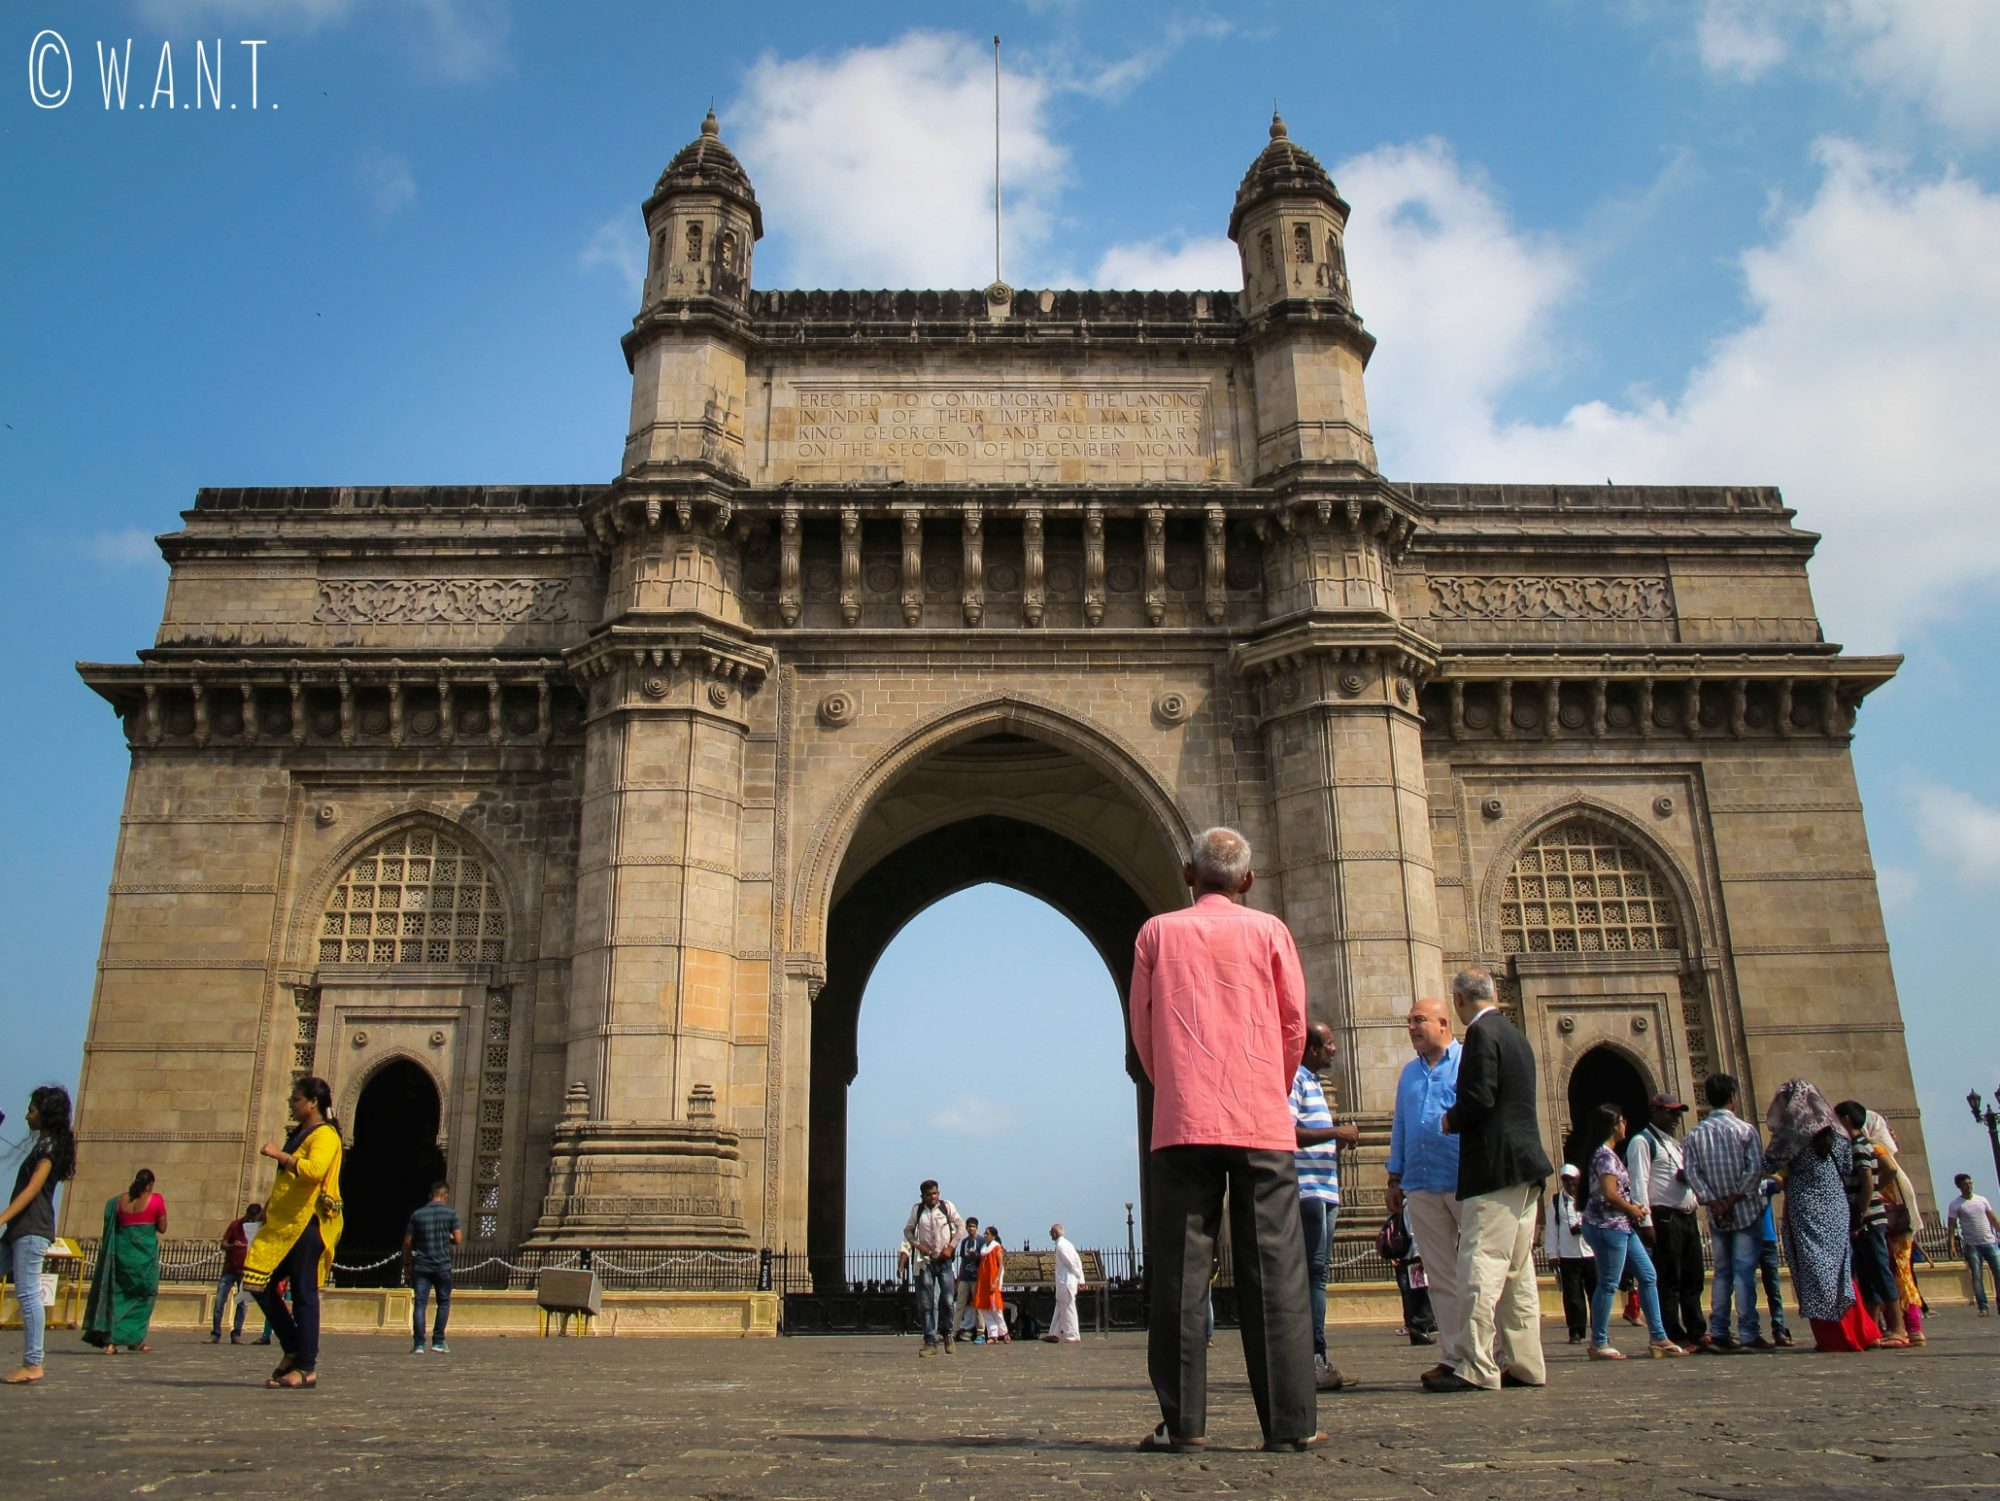 Gateway of India, la Porte de l'Inde prend la forme d'une gigantesque arche face à la mer arabique